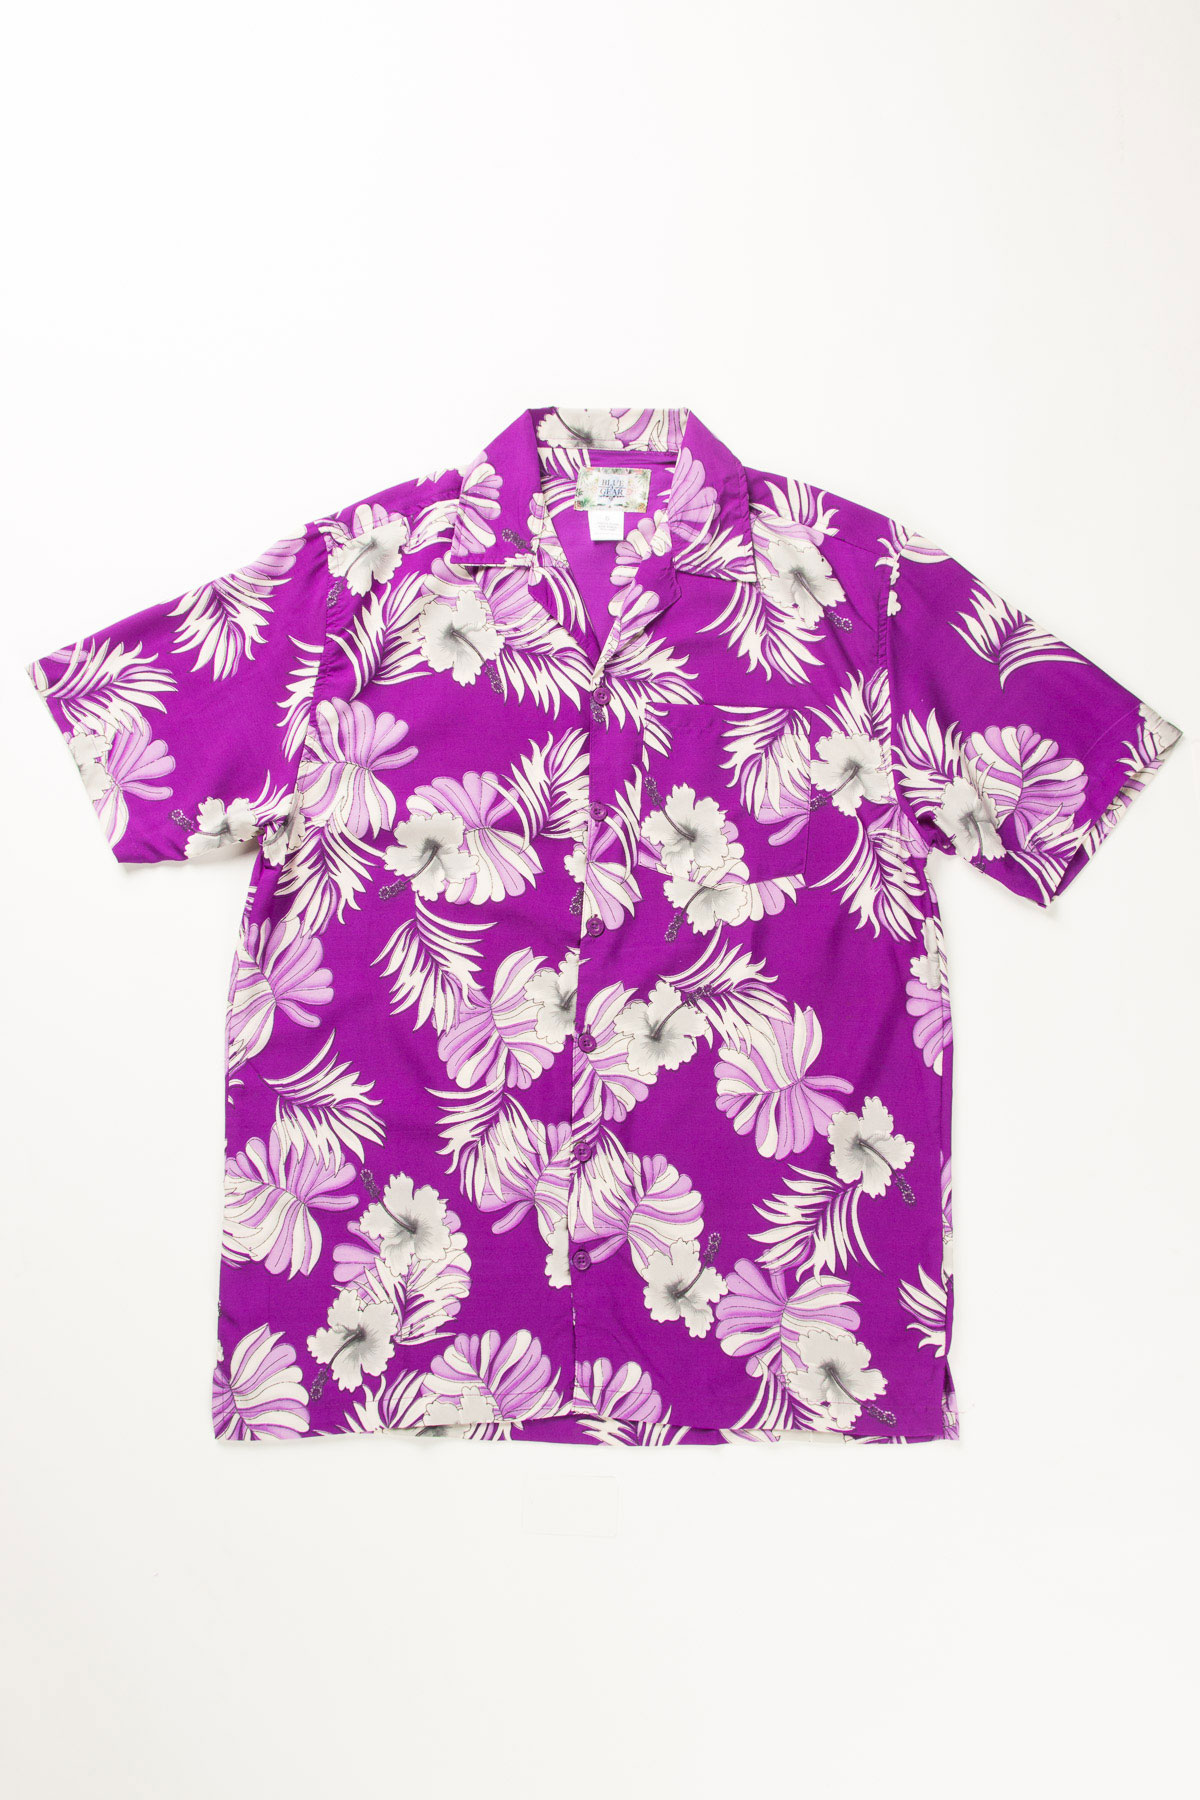 Purple White Hibiscus Flower Print Hawaiian Shirt Ragstock